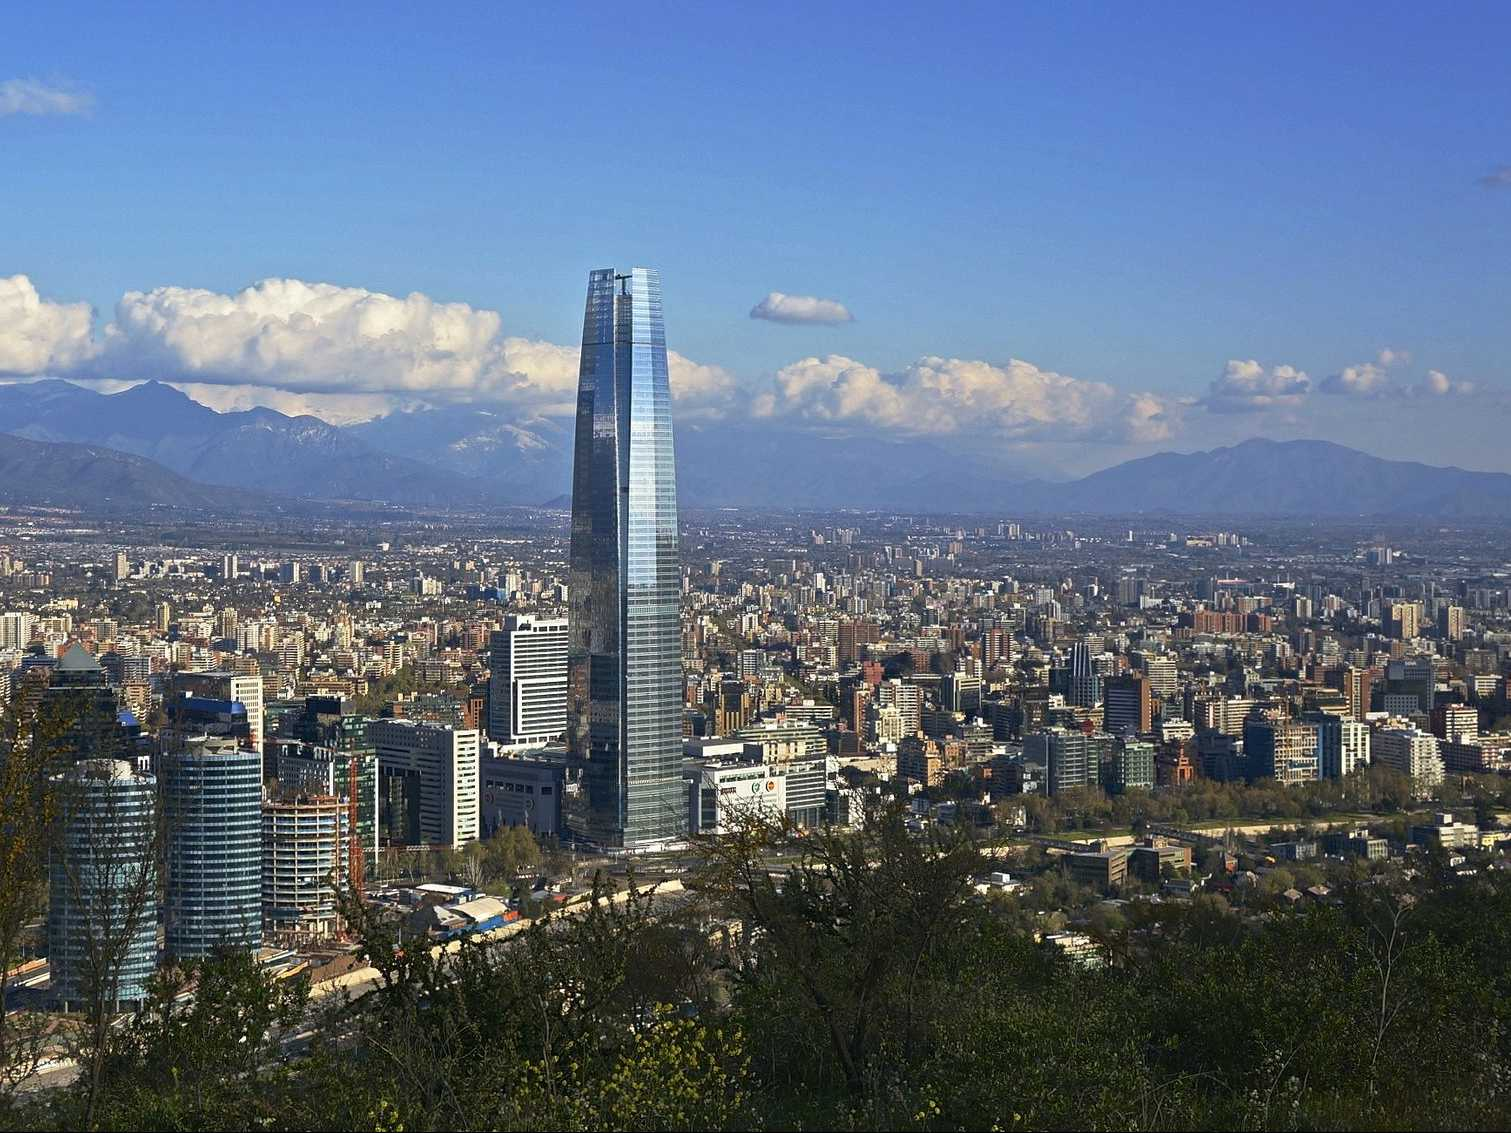 Santiago, Chile, has lower corruption rates than anywhere else in South America and is launching initiatives like Startup Chile, making it one of the most entrepreneur-friendly cities in the world.